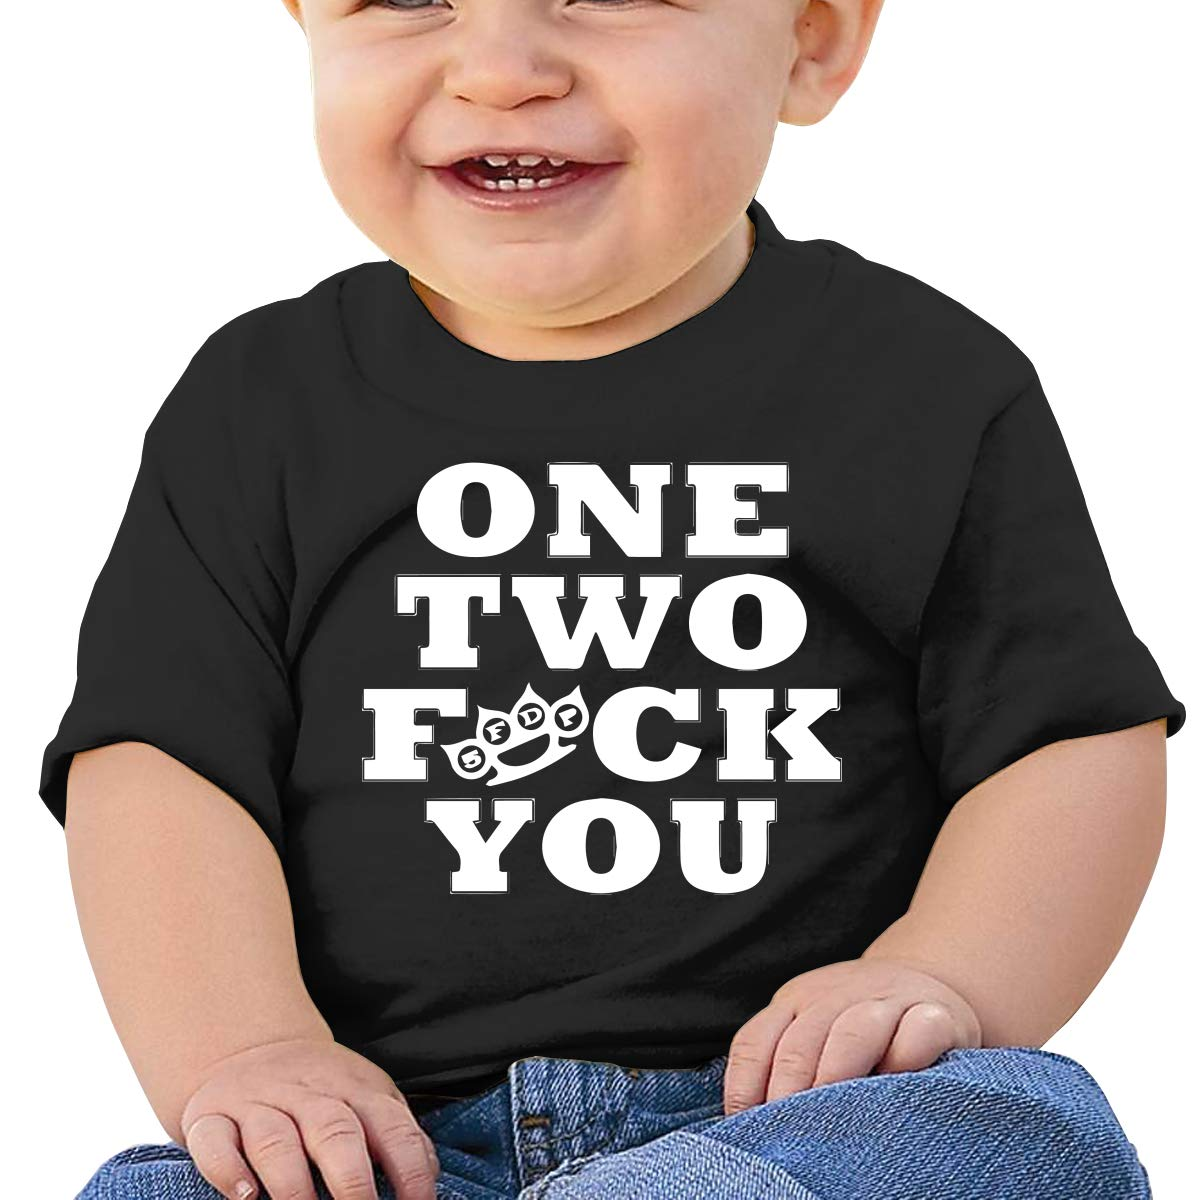 One Two Fuck You Toddler Short-Sleeve Tee for Boy Girl Infant Kids T-Shirt On Newborn 6-18 Months